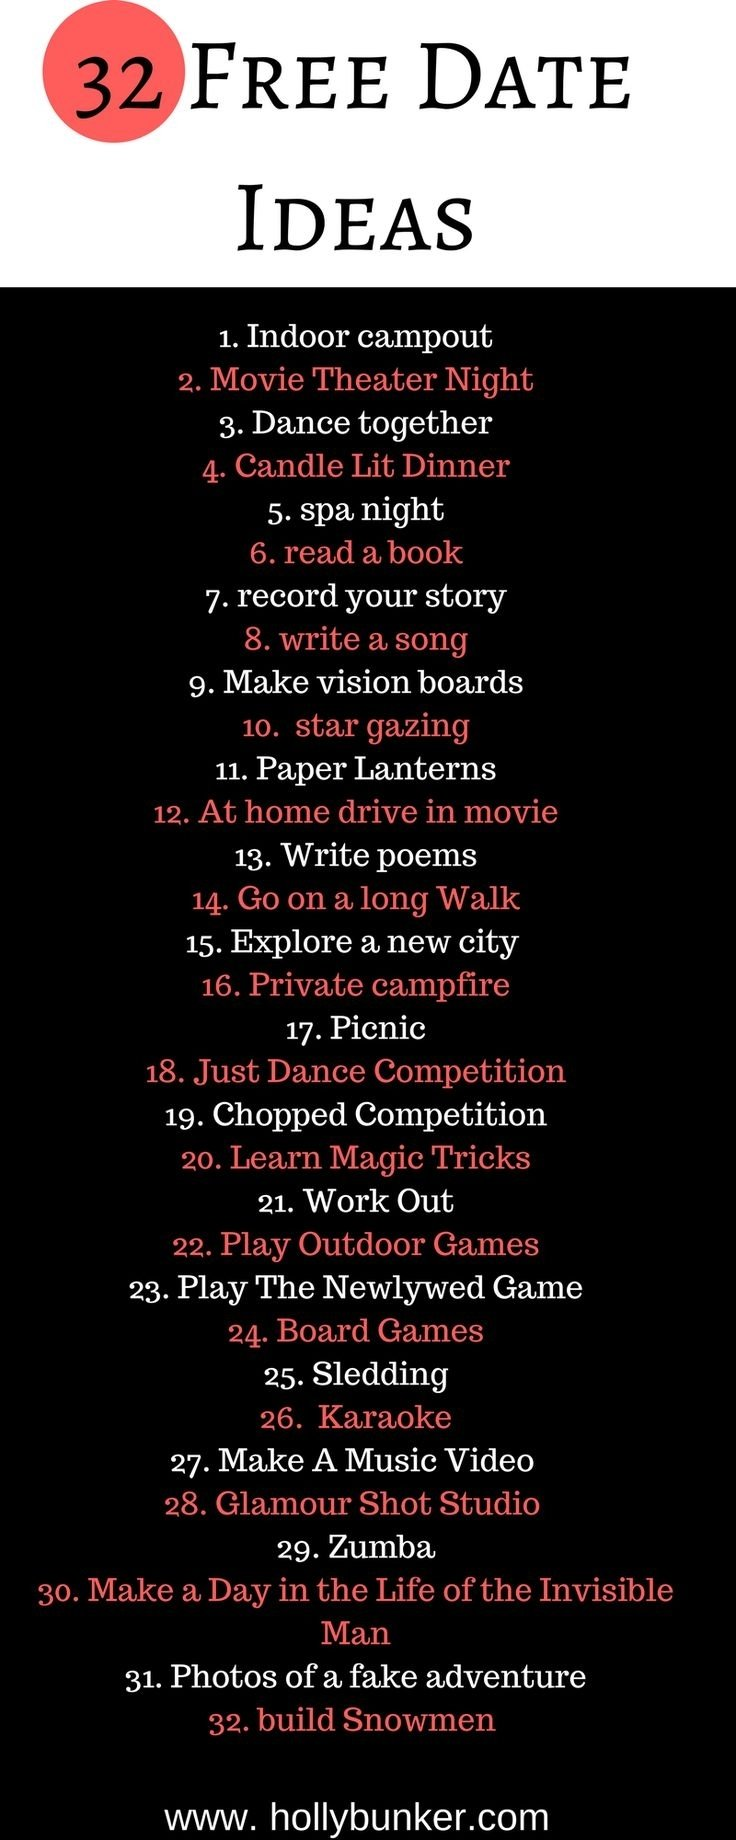 10 Most Recommended Birthday Date Ideas For Girlfriend 629 best date night ideas images on pinterest couple families and 4 2020